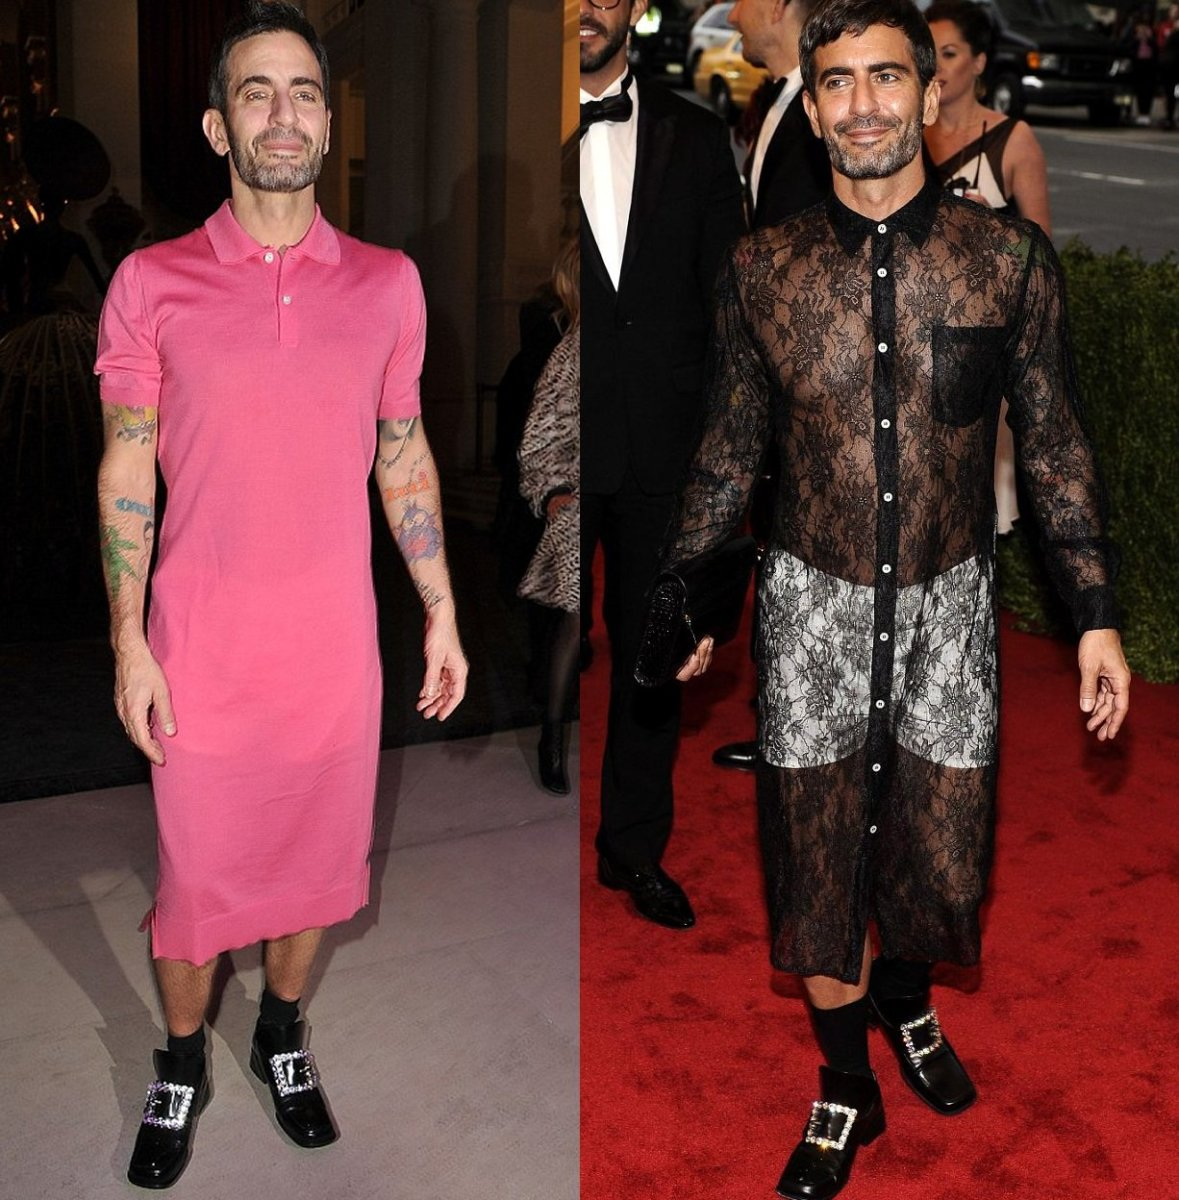 Marc Jacobs wearing t-shirt dresses: Pink and see through Black Lace t-shirt dresses by Comme des Garçons